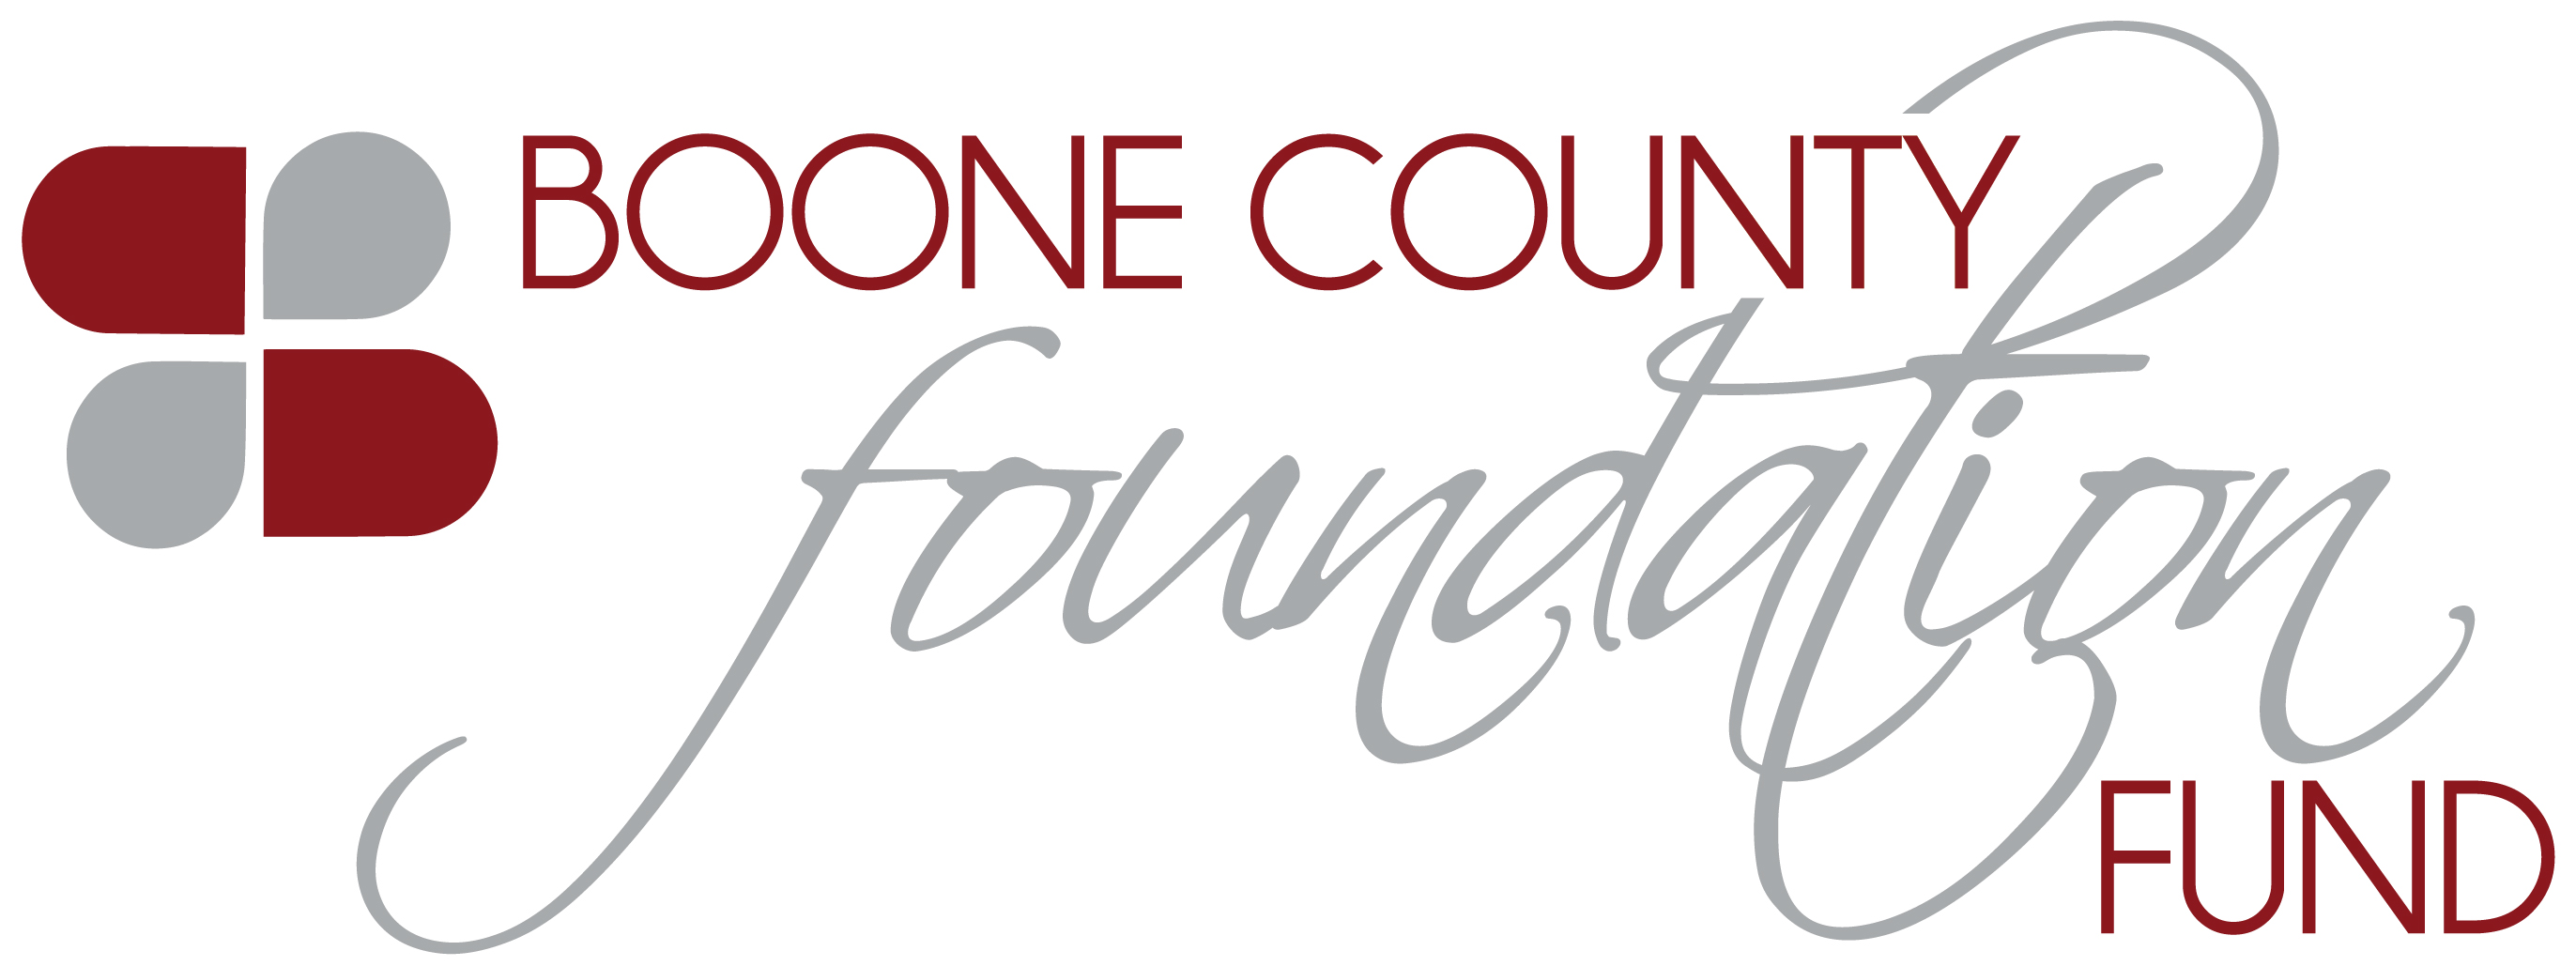 Boone County Foundation